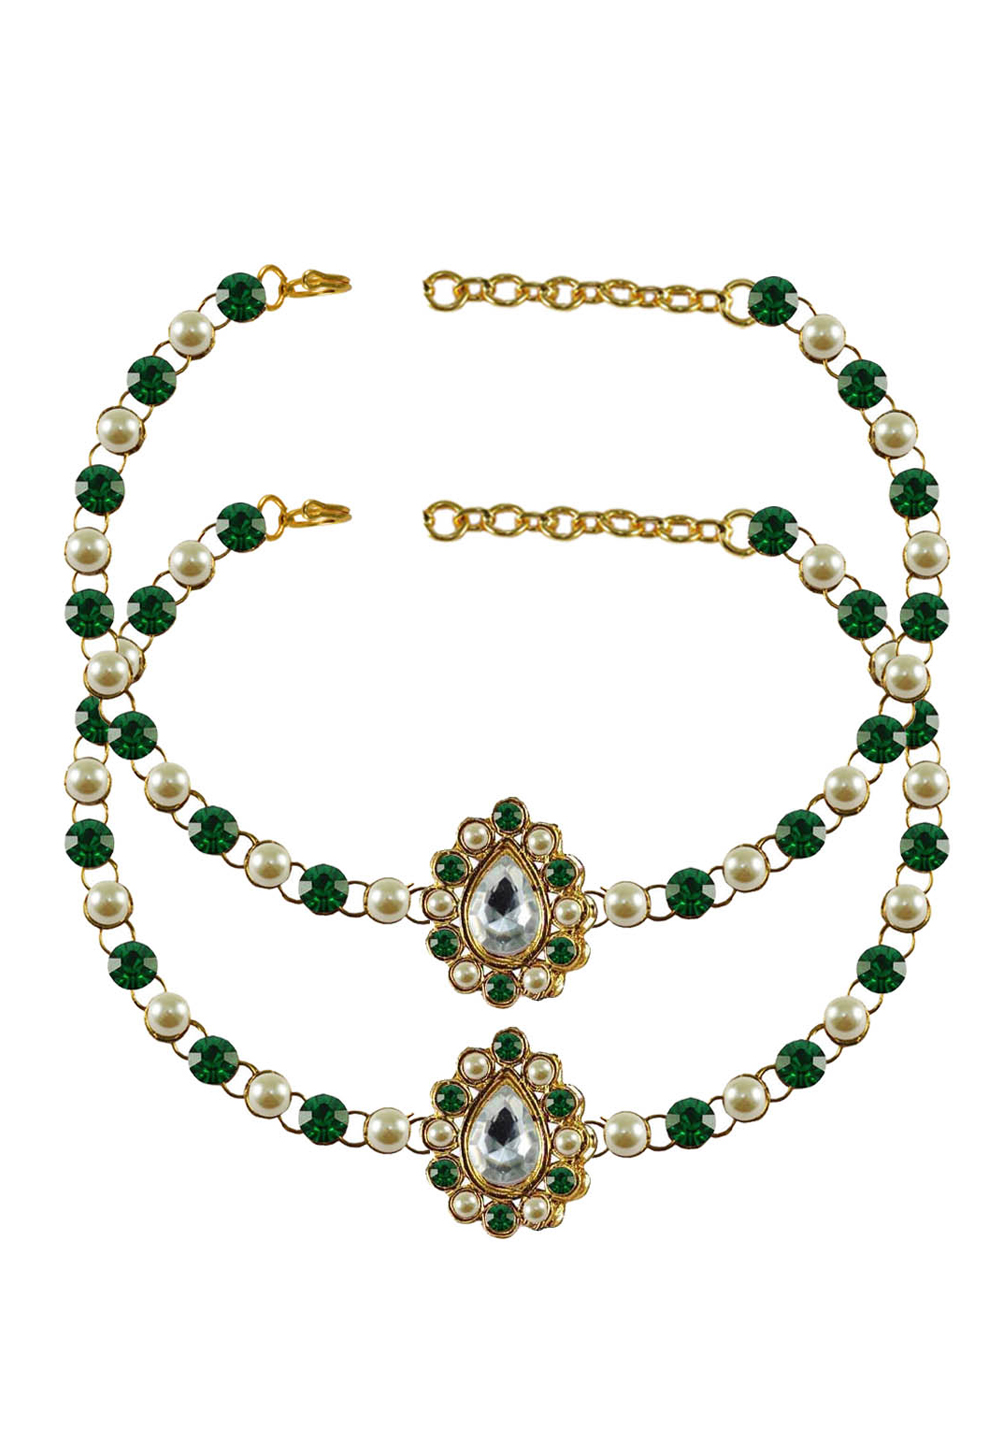 Green Brass Gold Plated Anklets 171348